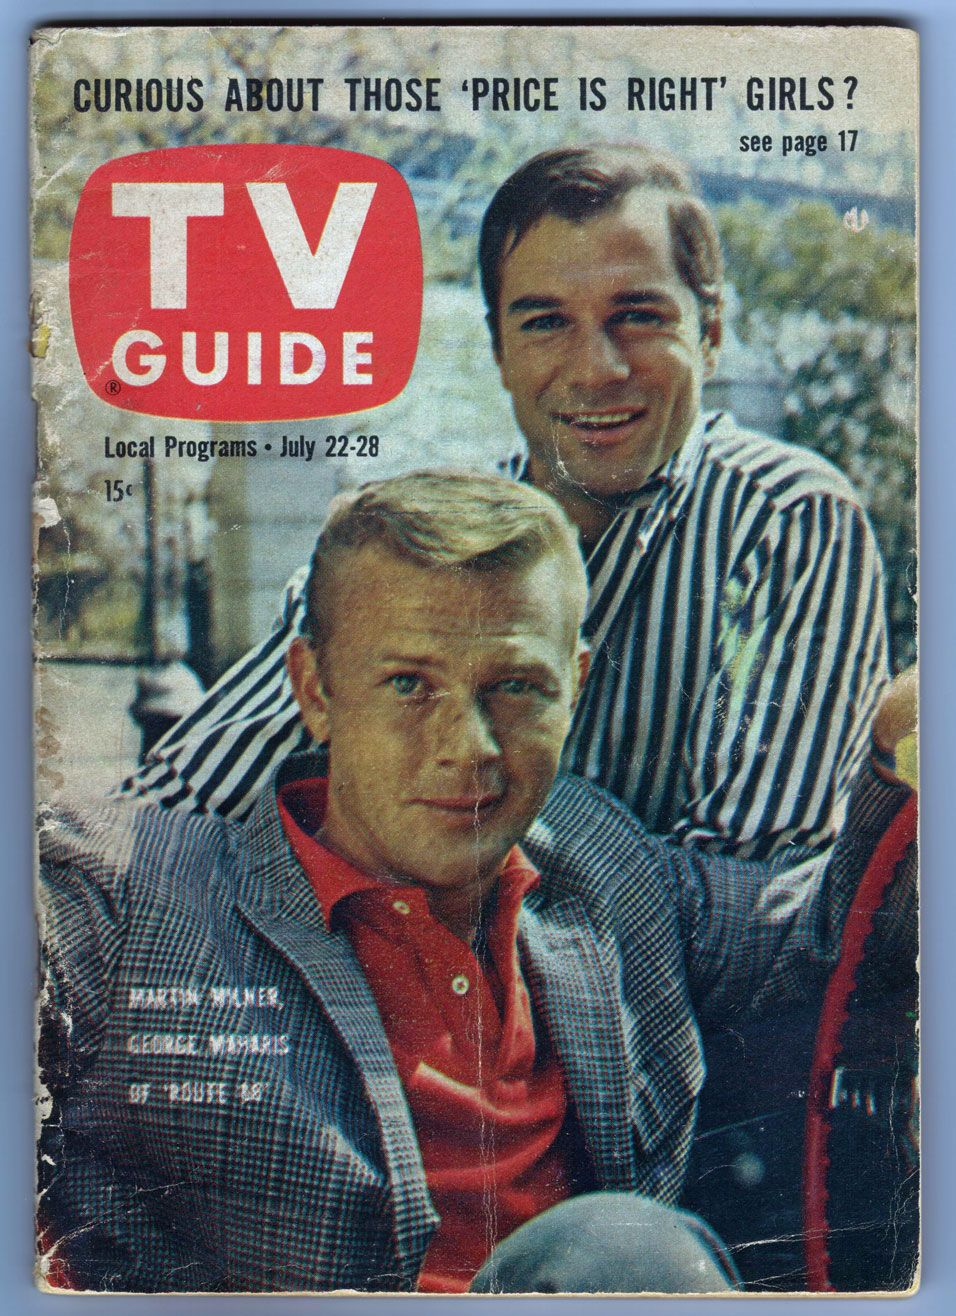 route 66 - tv guide - july 22, 1961 | timeline and memory